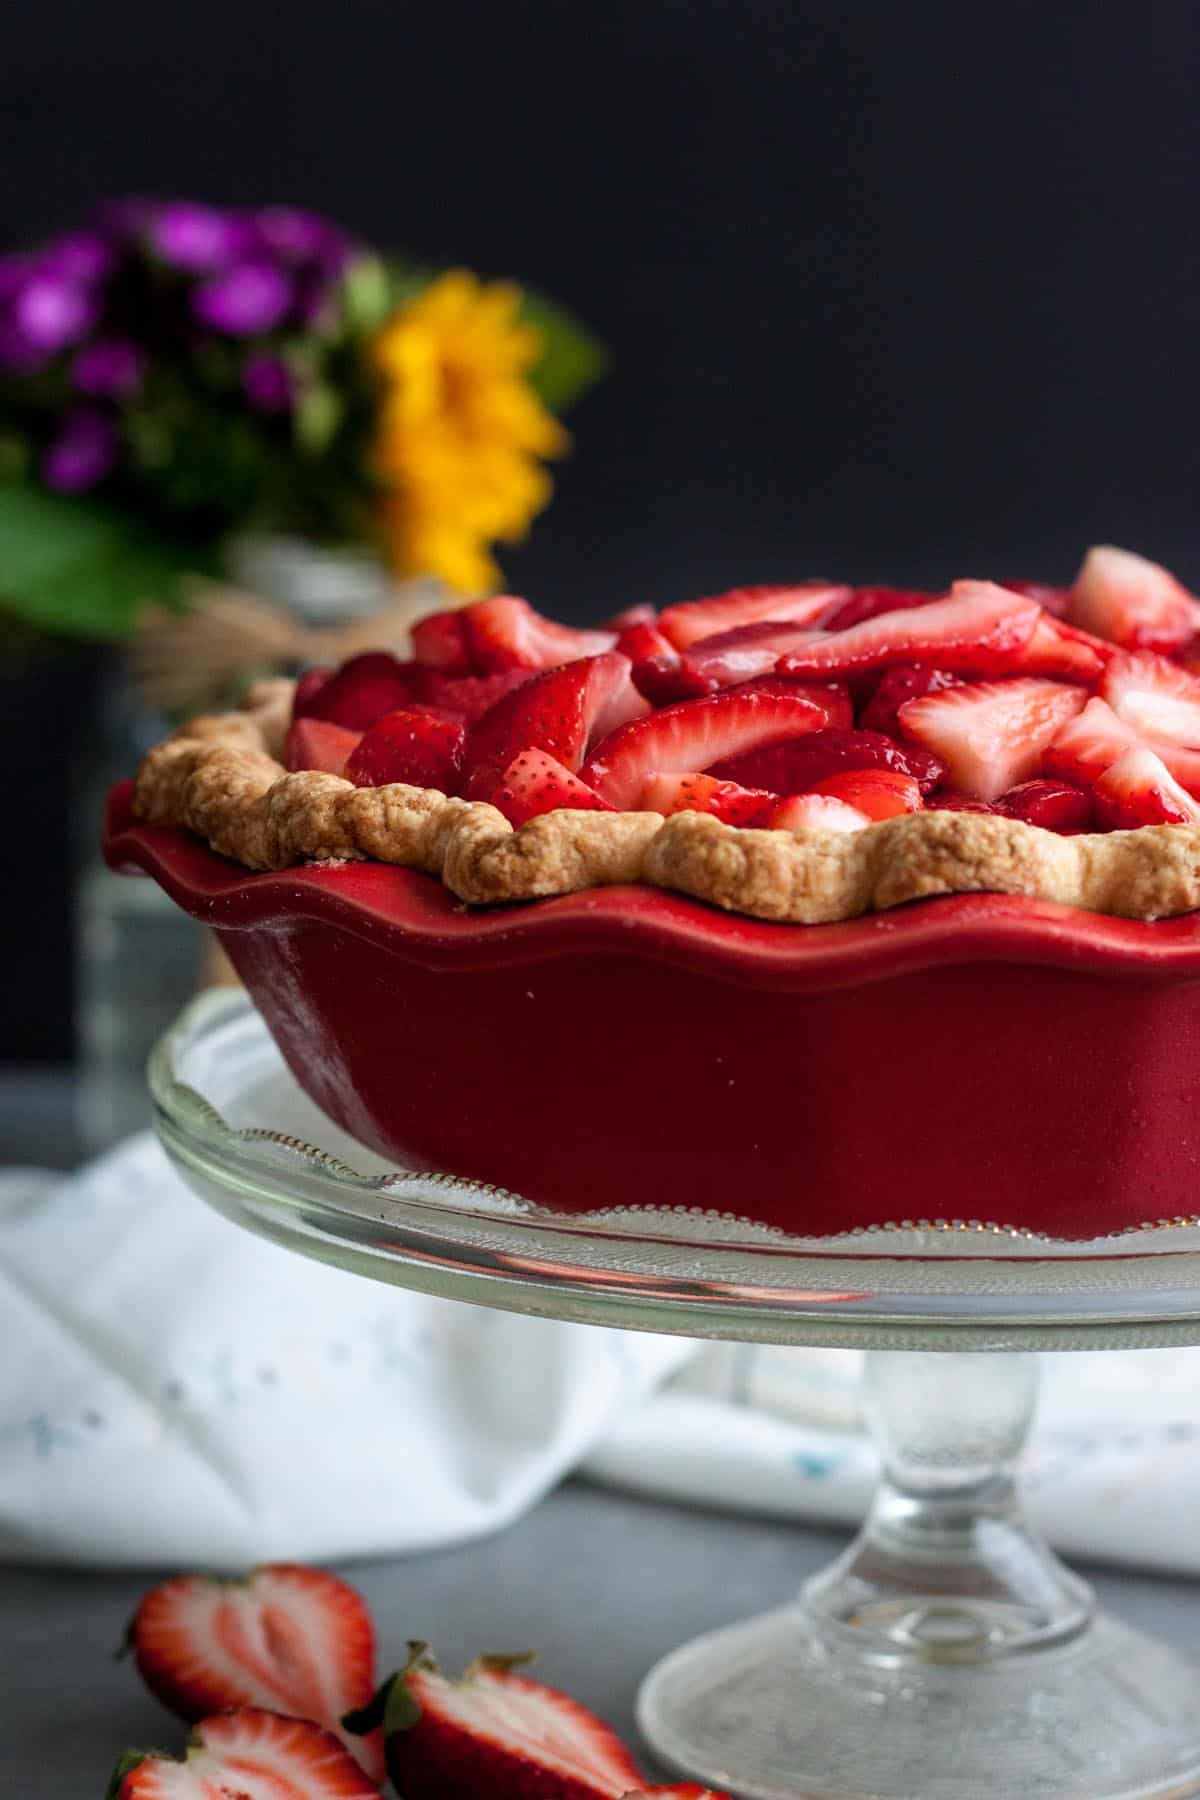 Strawberry and Cream Pie on a cake stand